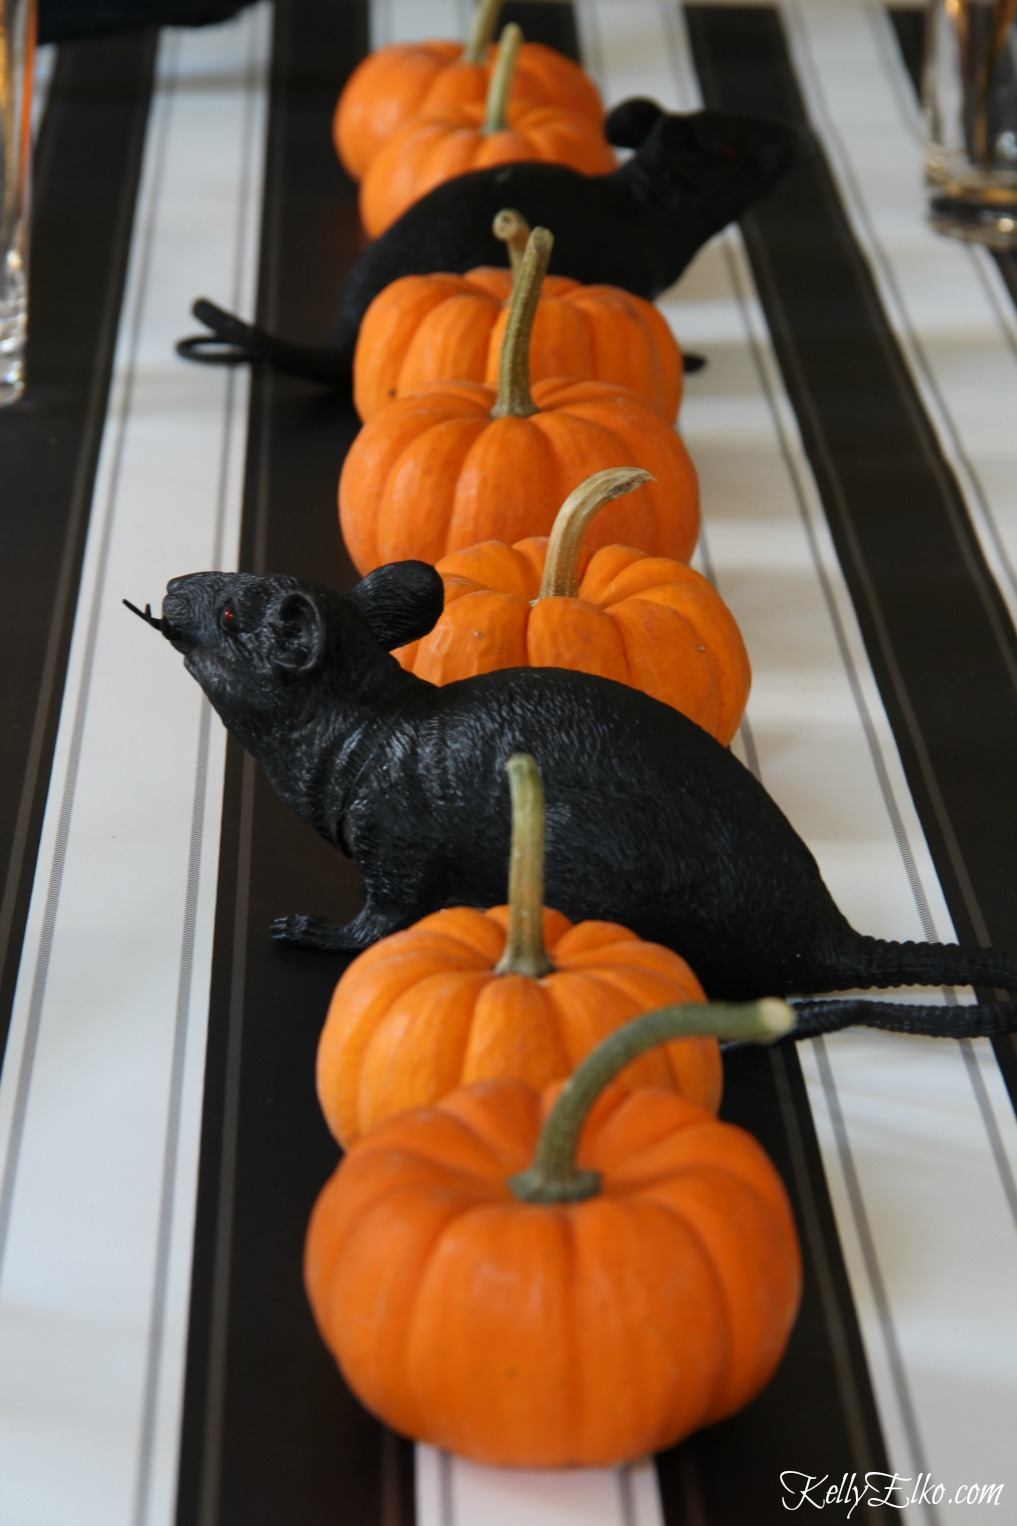 Black and orange Halloween centerpiece - mini pumpkins and rats! kellyelko.com